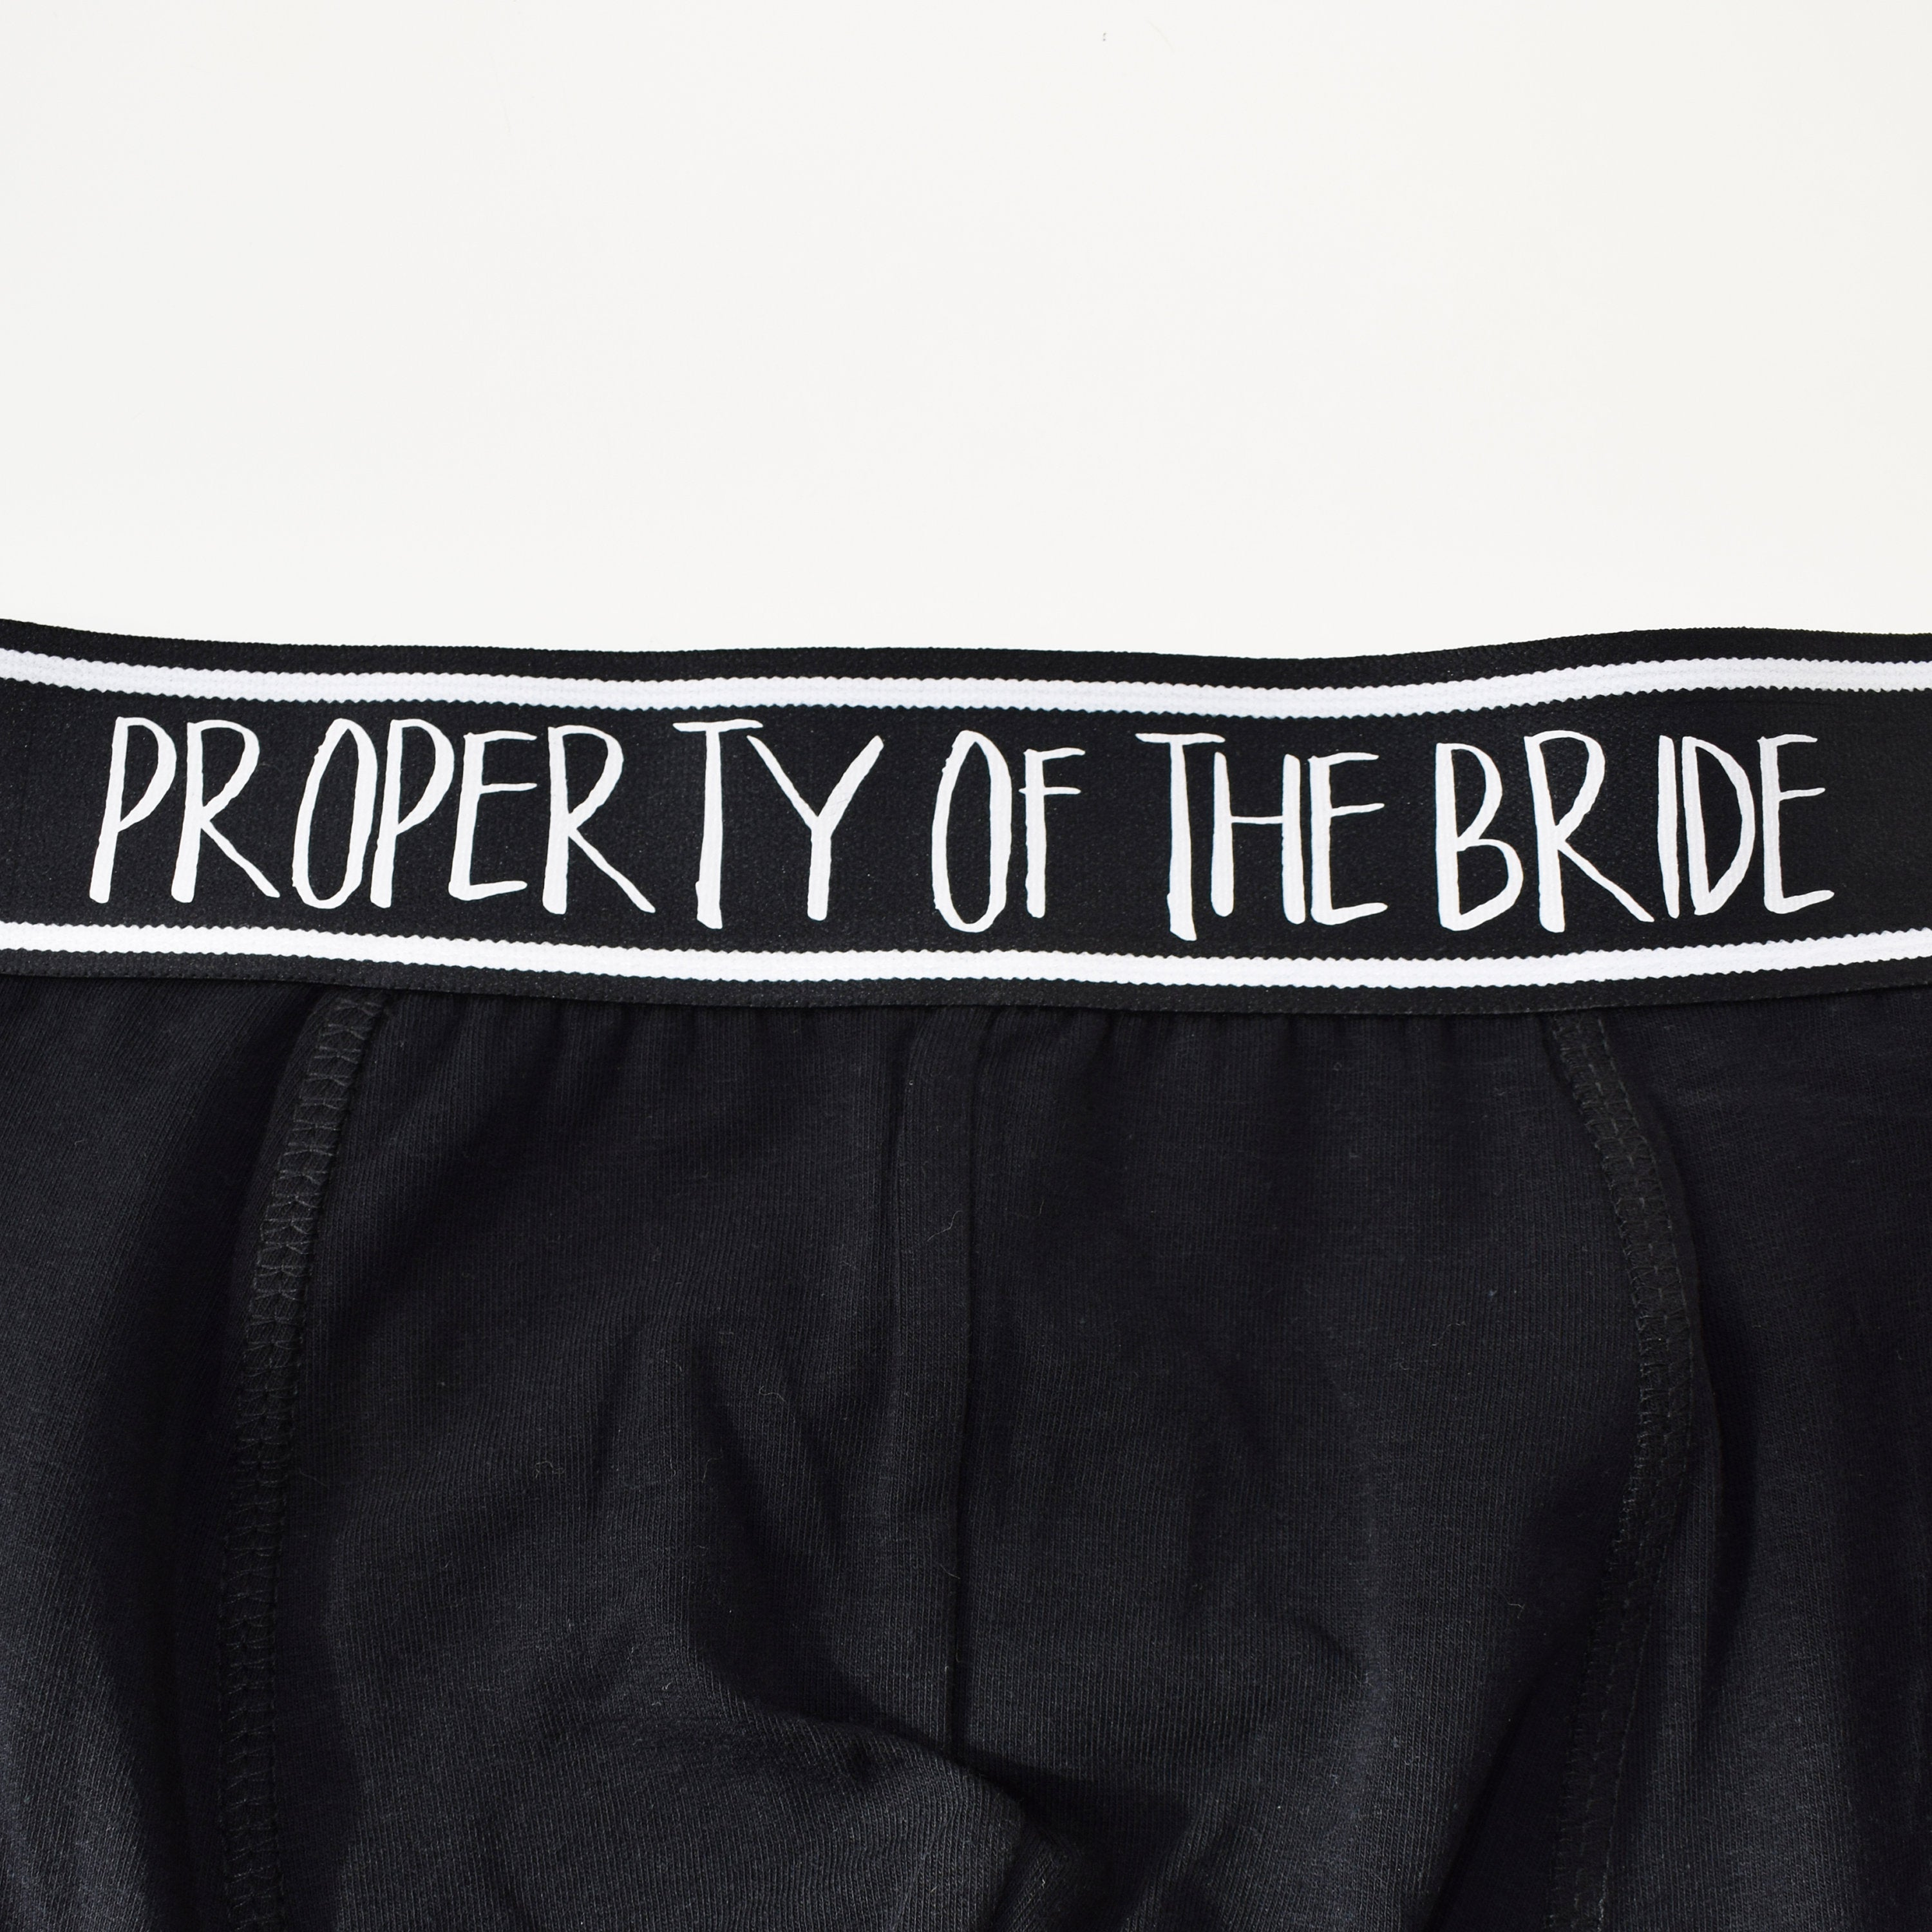 So You Don't Get Cold Feet,Property of the bride, Personalised Grooms Boxers Underwear Set